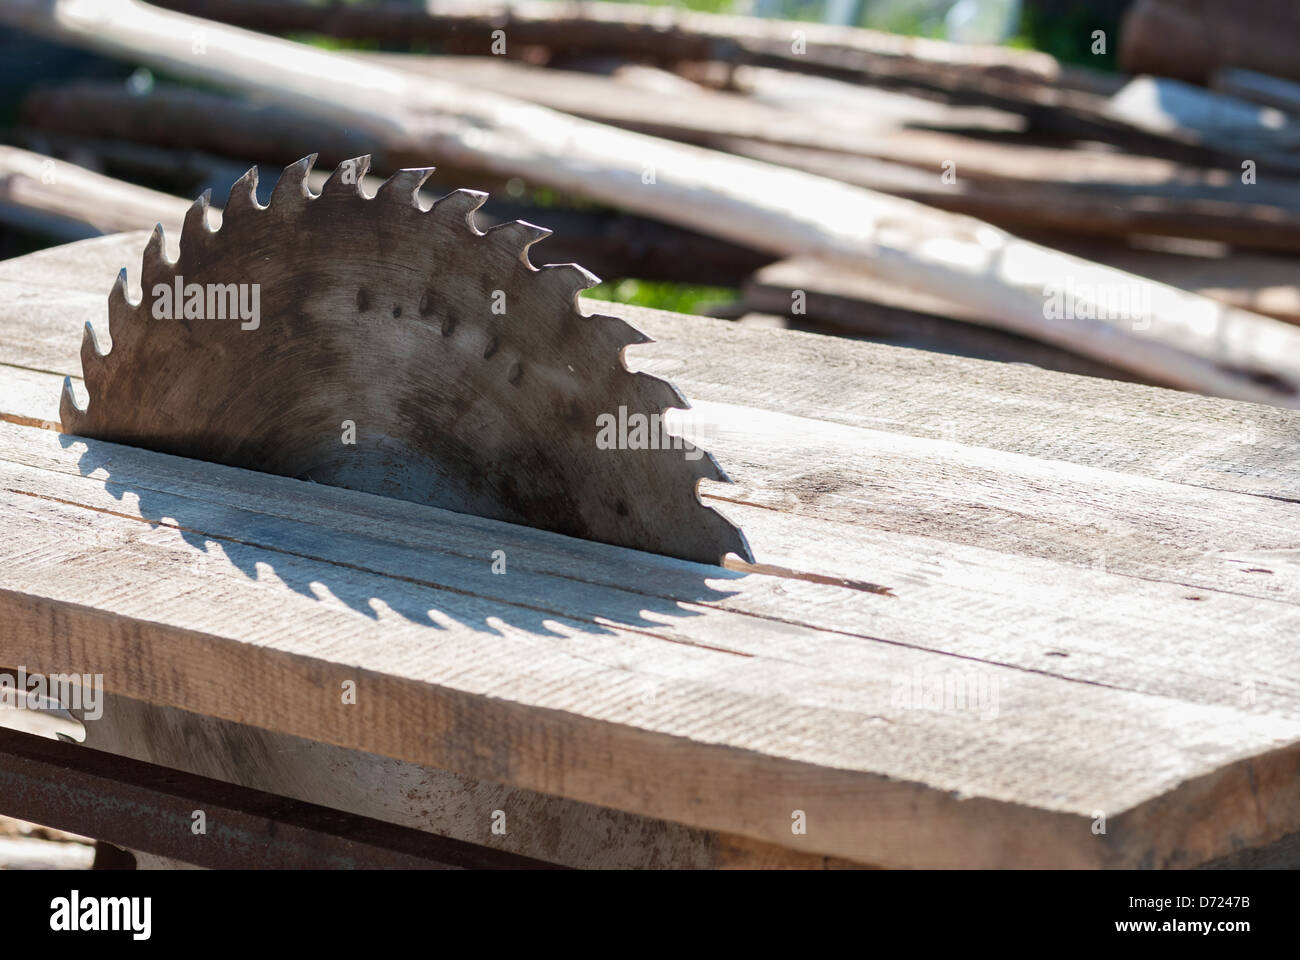 Close up of table saw blade, outdoors - Stock Image